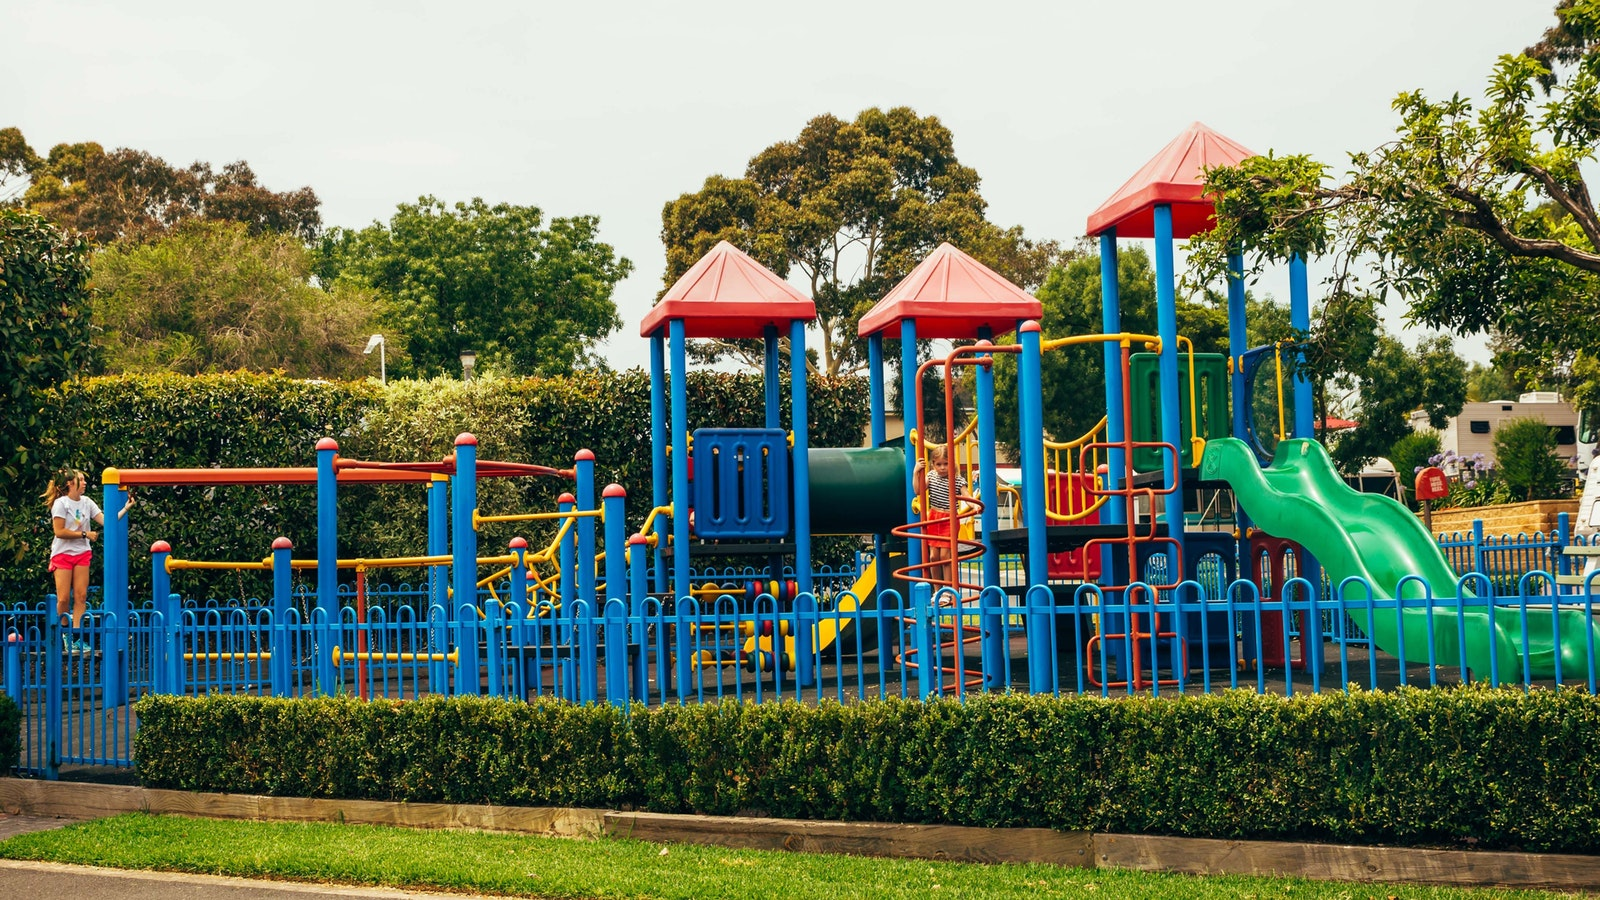 Adventure Playground at Melbourne BIG4 Holiday Park